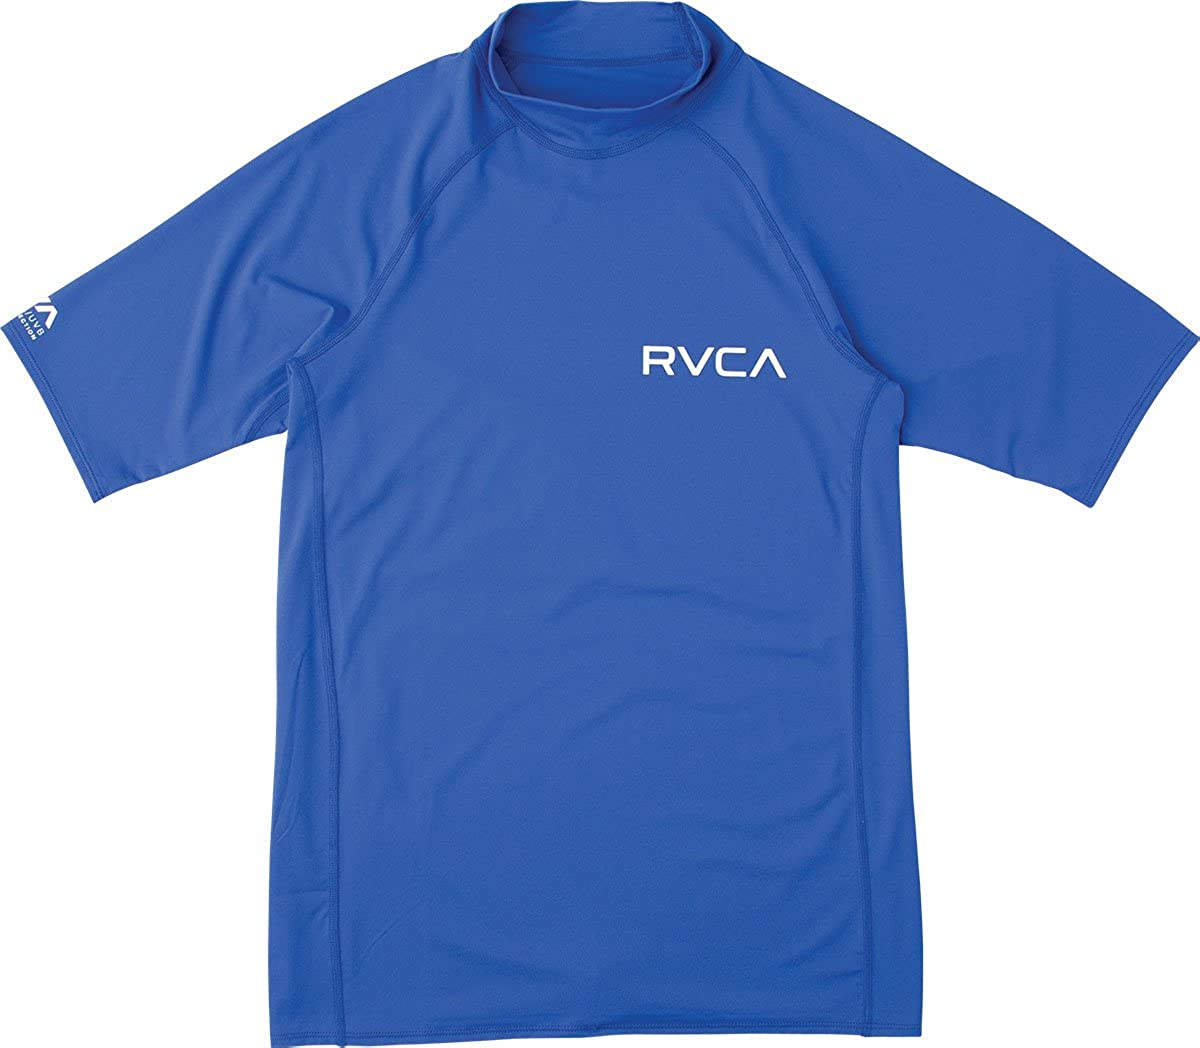 RVCA Men's Rvca Solid Short Sleeve Rashguard